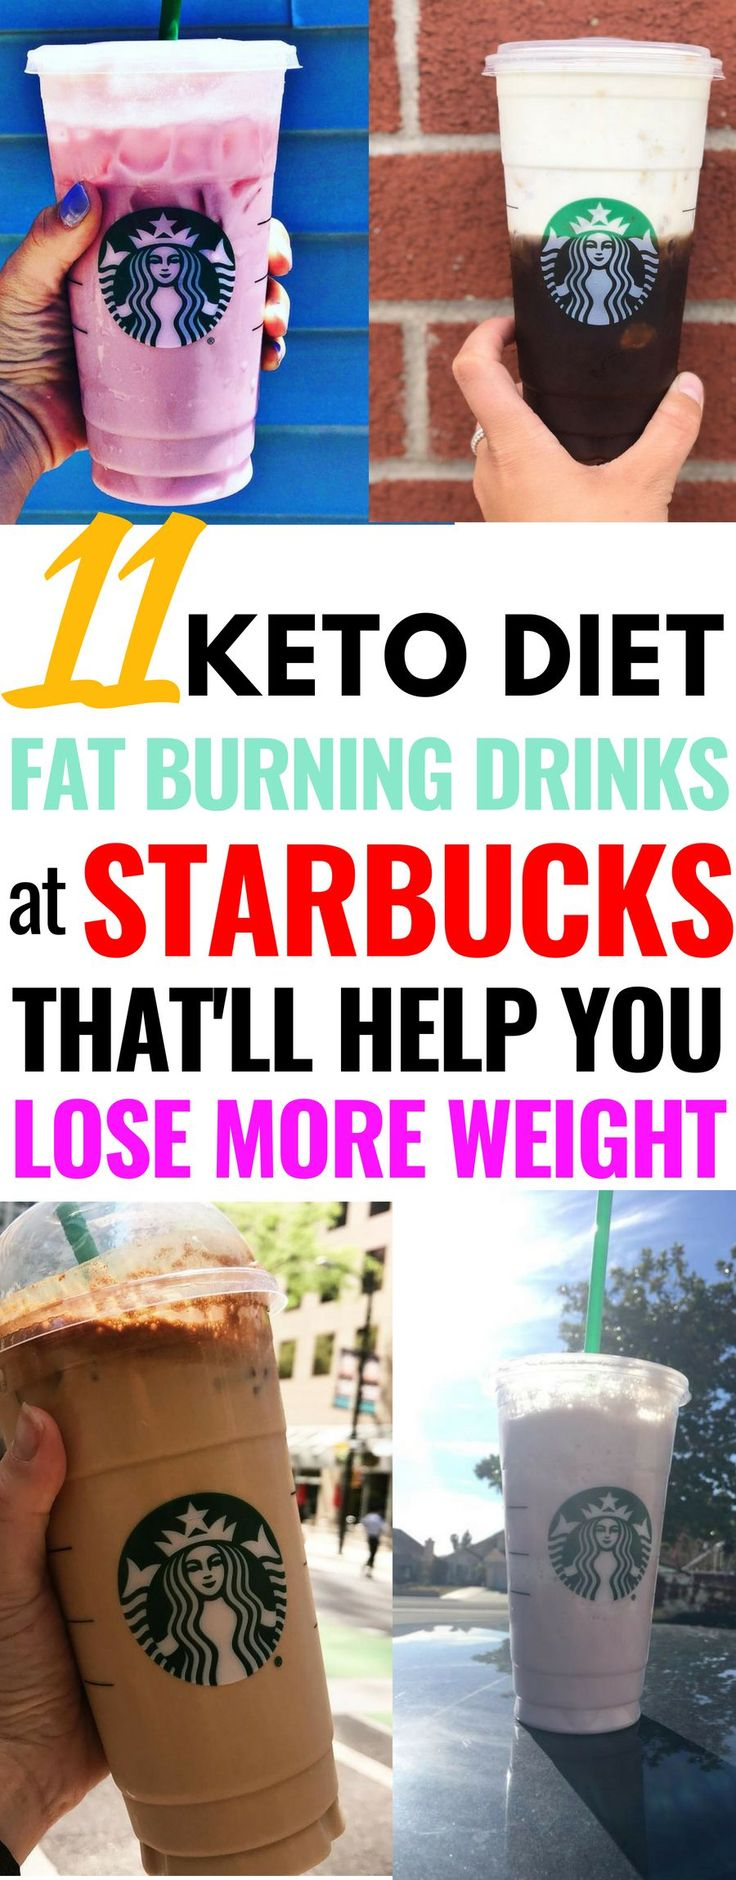 11 Keto Diet Fat Burning Drinks At Starbucks To Help You Lose Weight